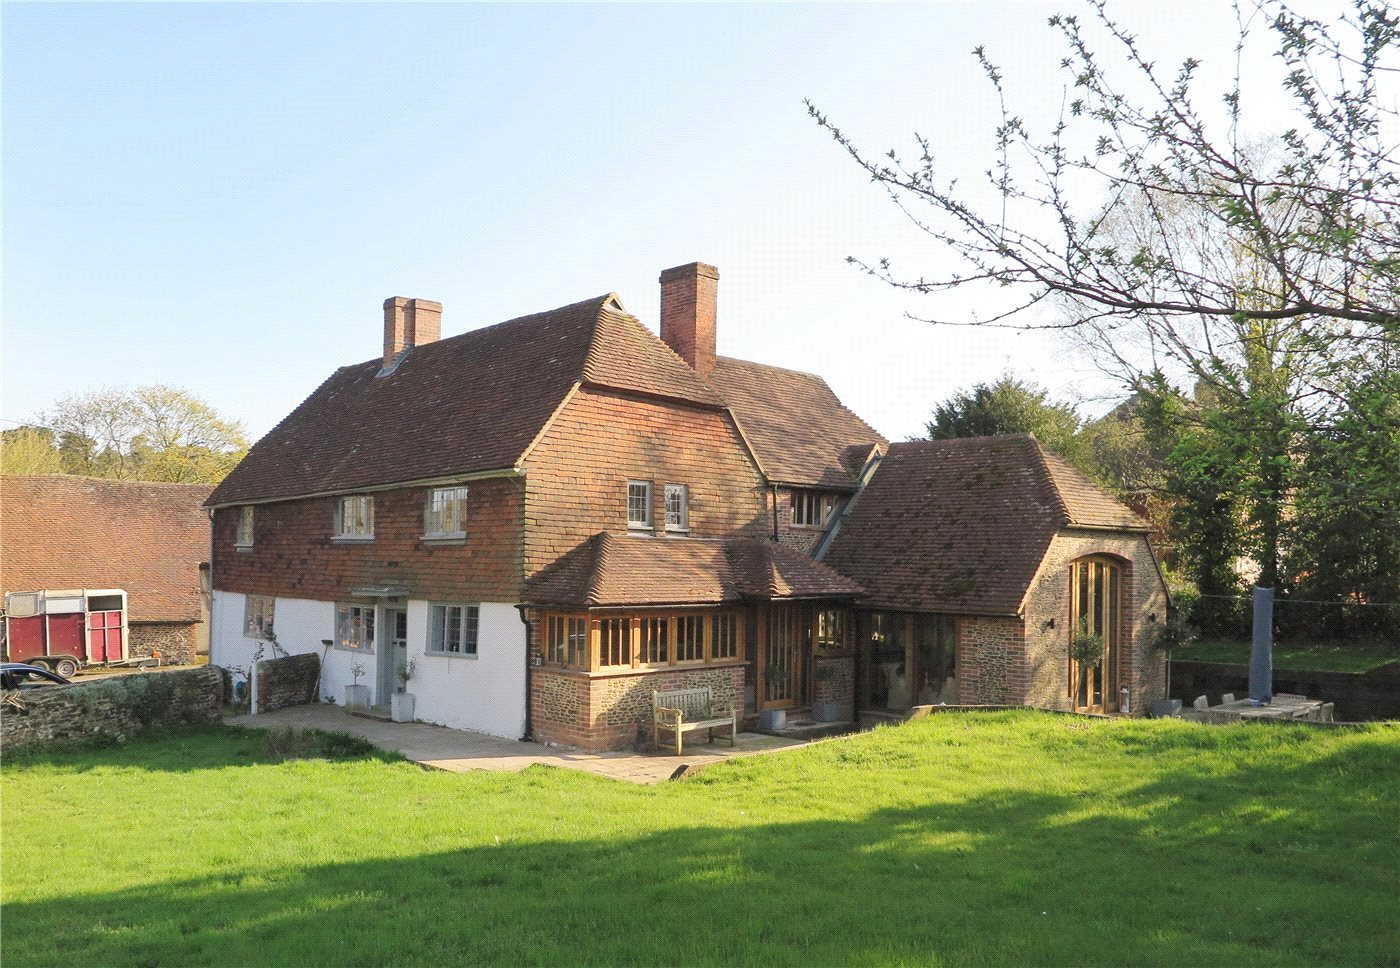 four-bedroom house in Tilford near Farnham